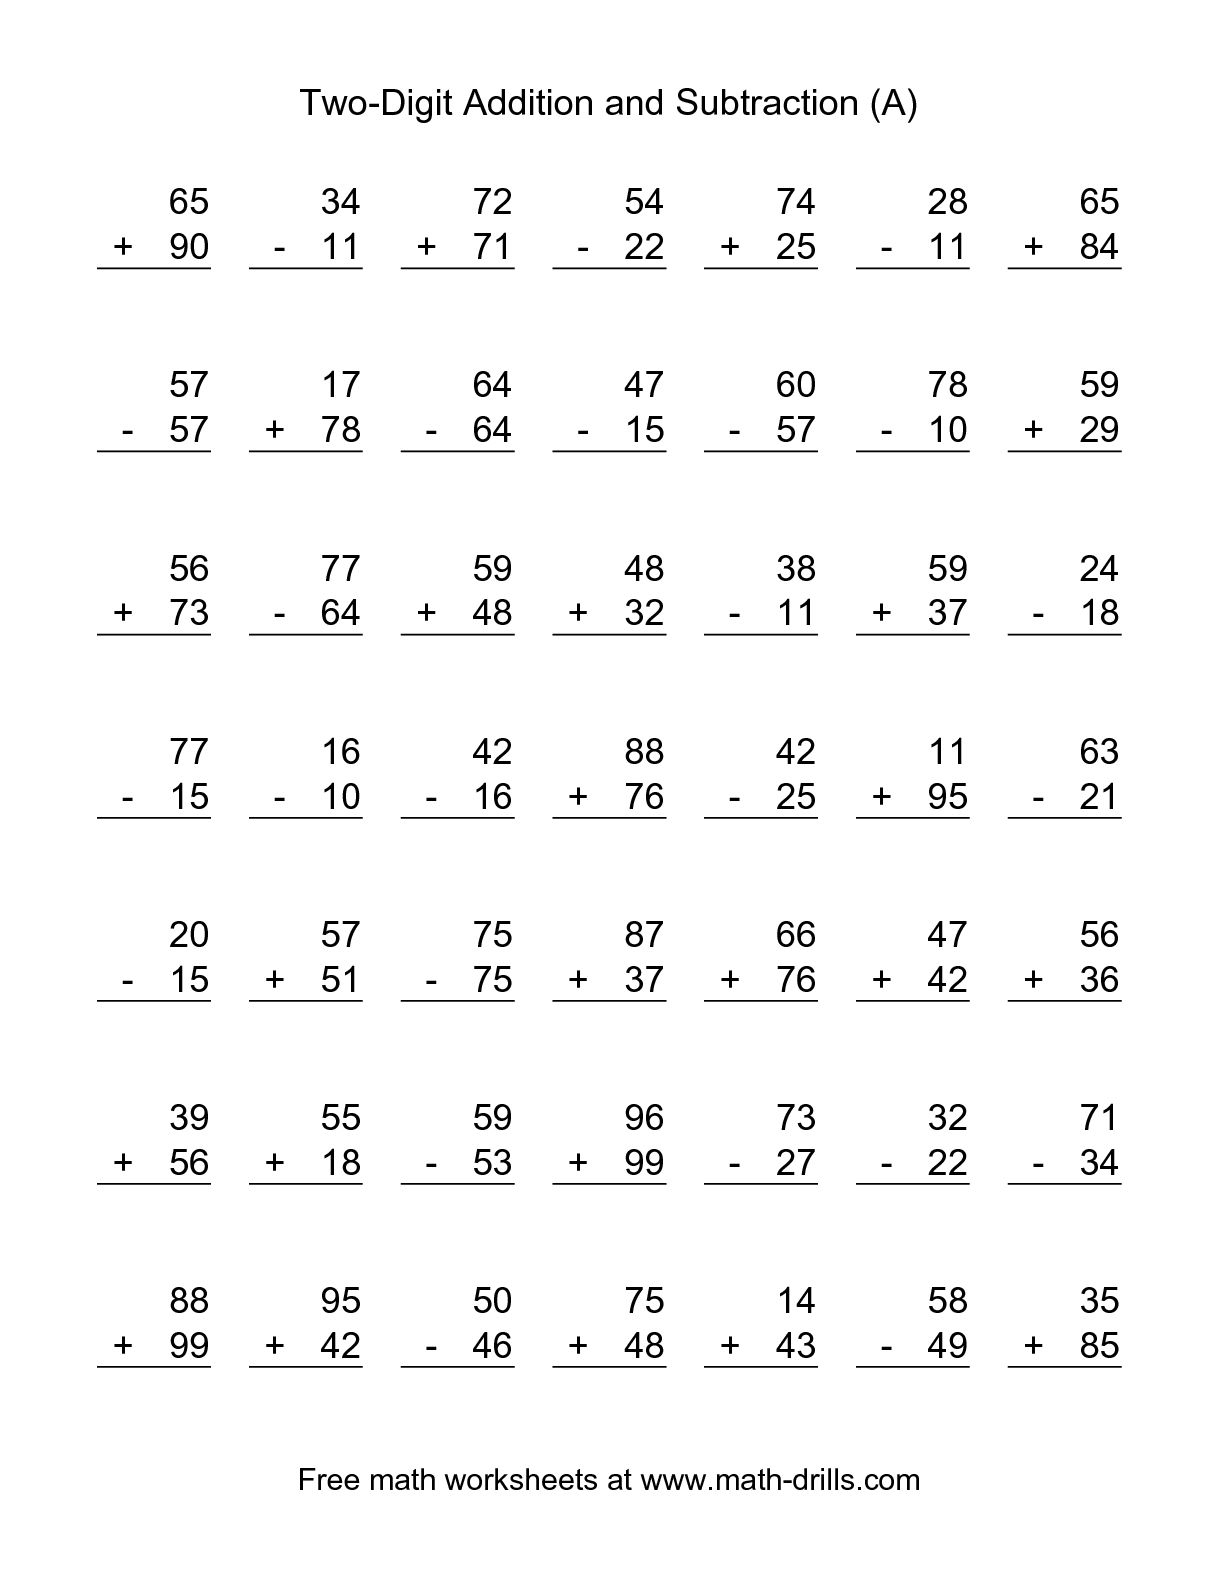 Addition And Subtraction Worksheets. Addition. Alistairtheoptimist - Free Printable Addition And Subtraction Worksheets